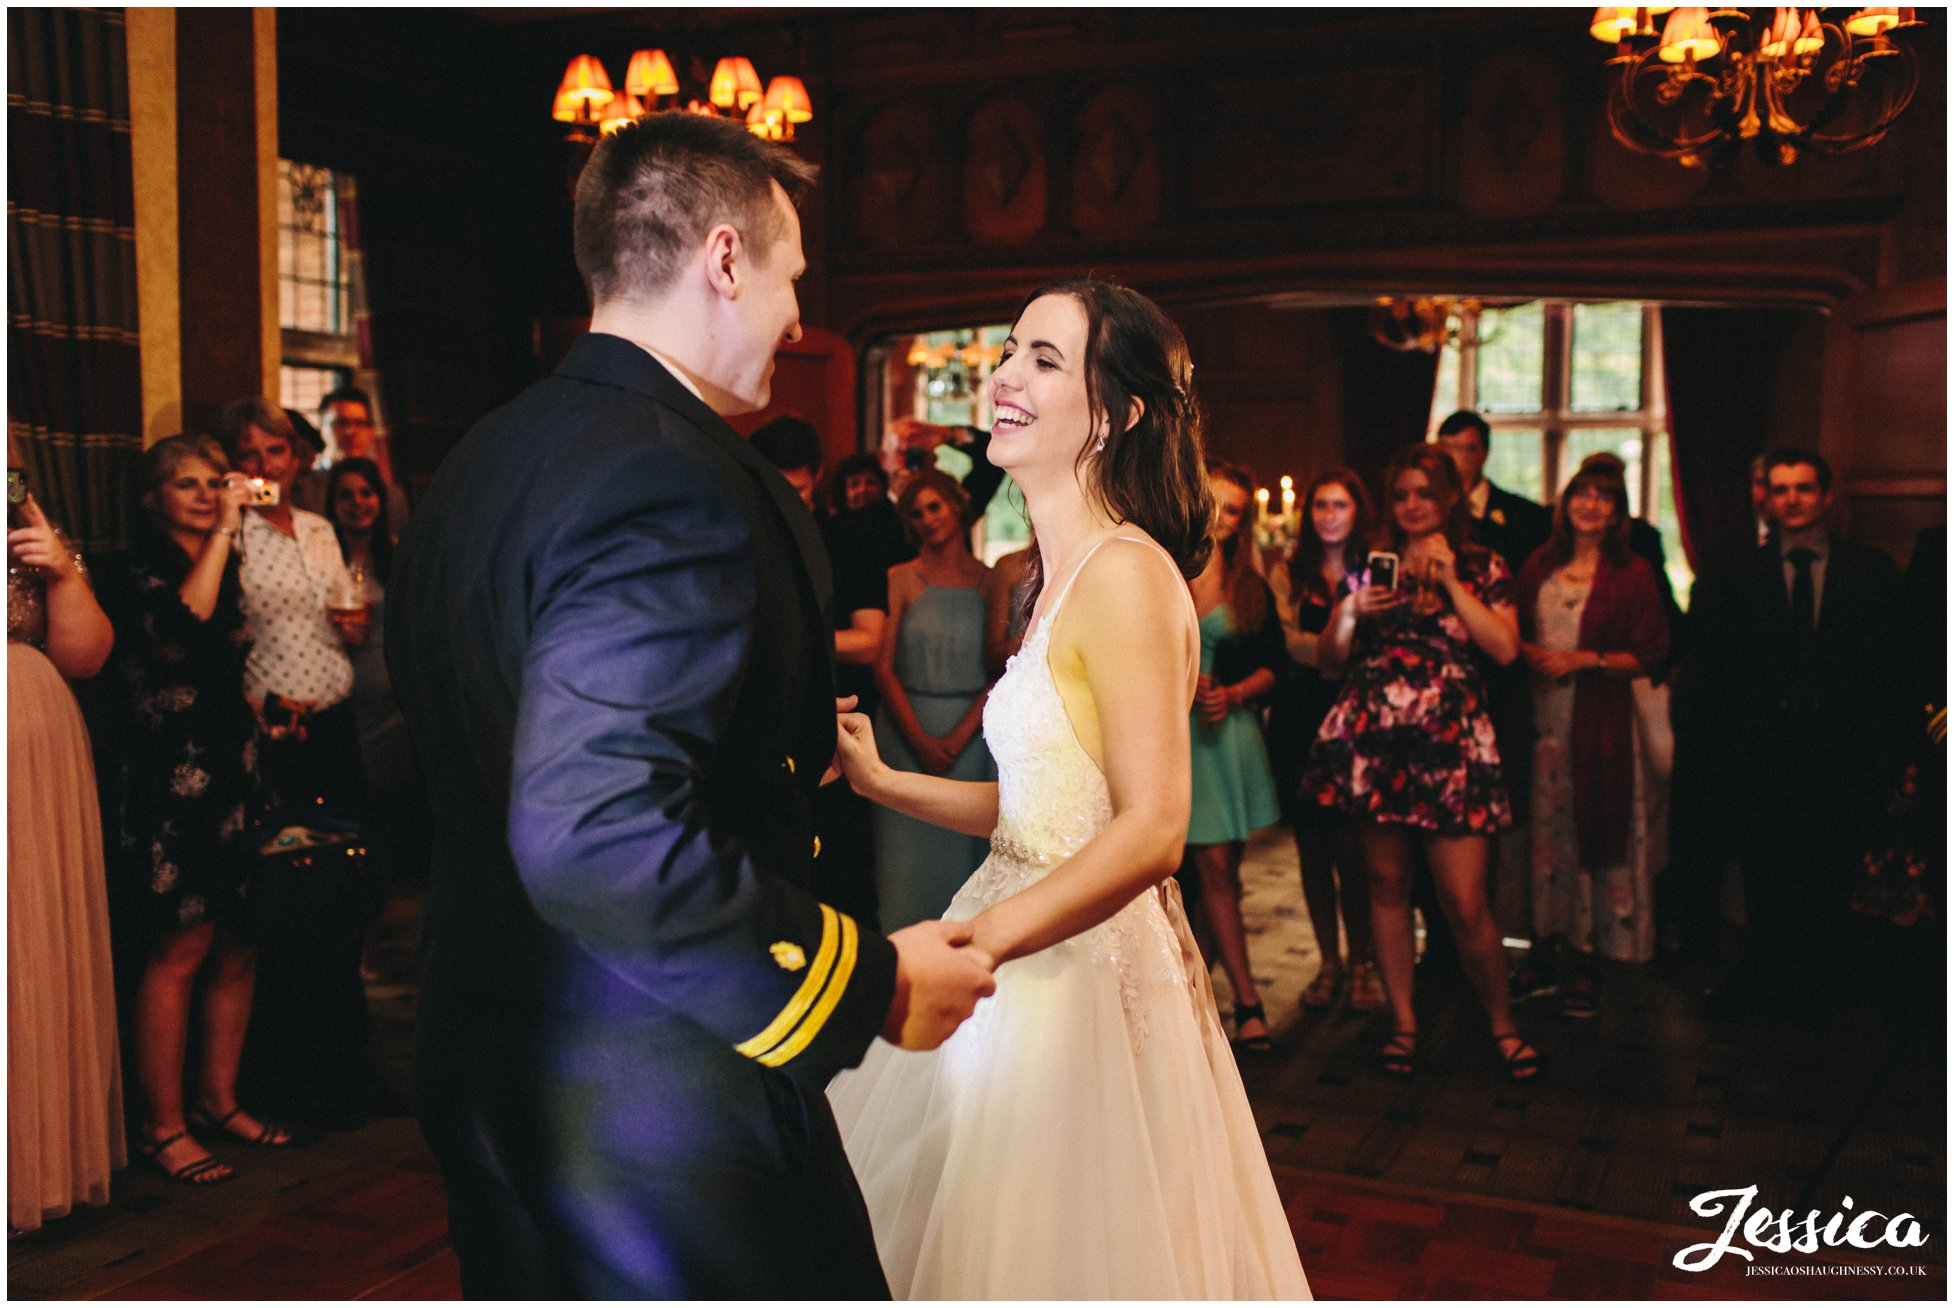 newly wed's share their first dance together